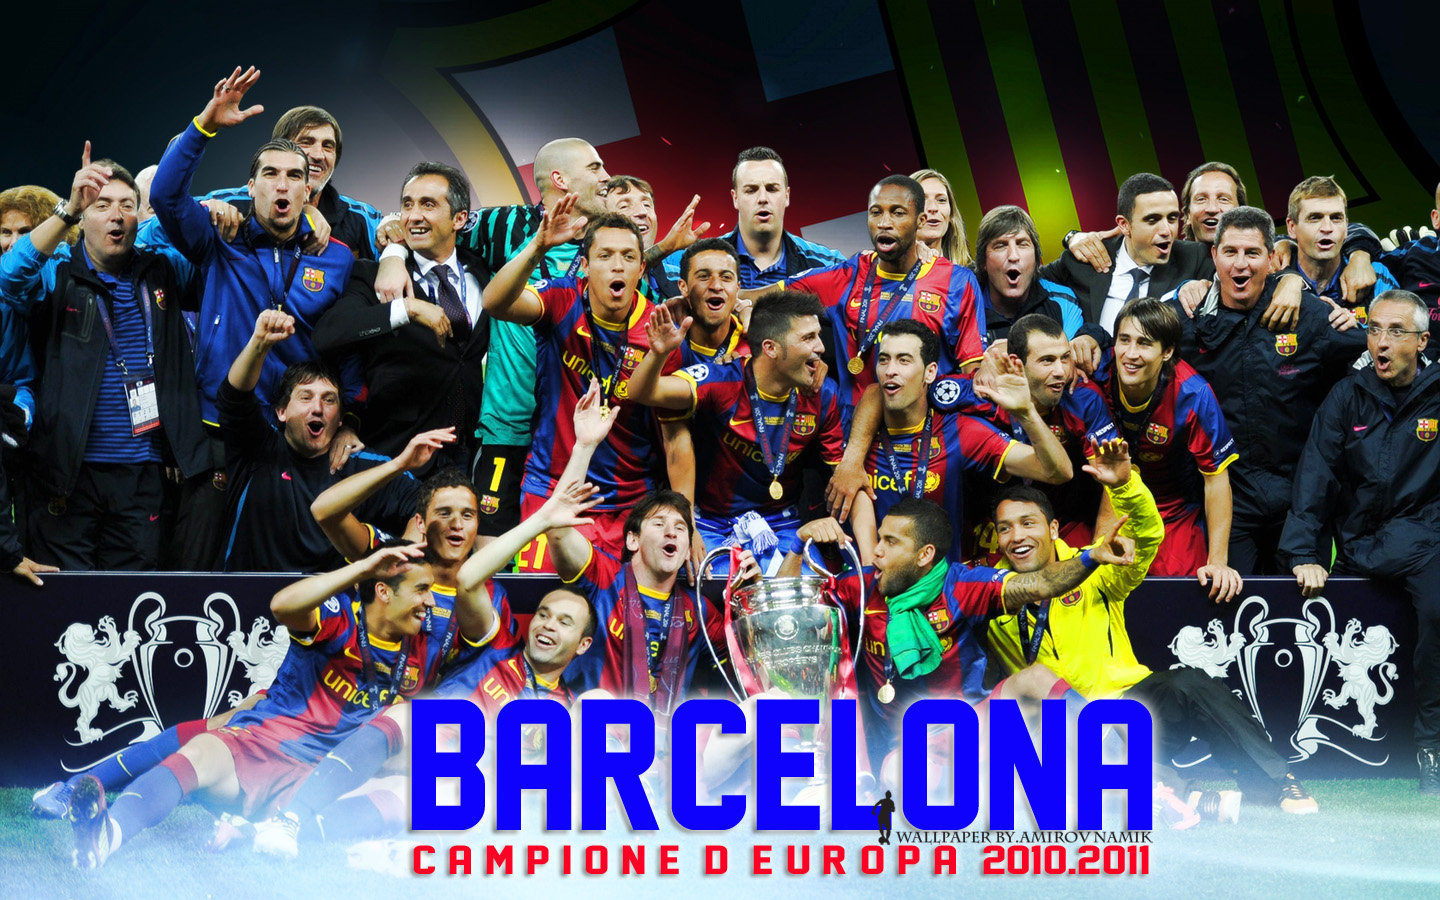 FC Barcelona Champions League 2011 Wallpaper